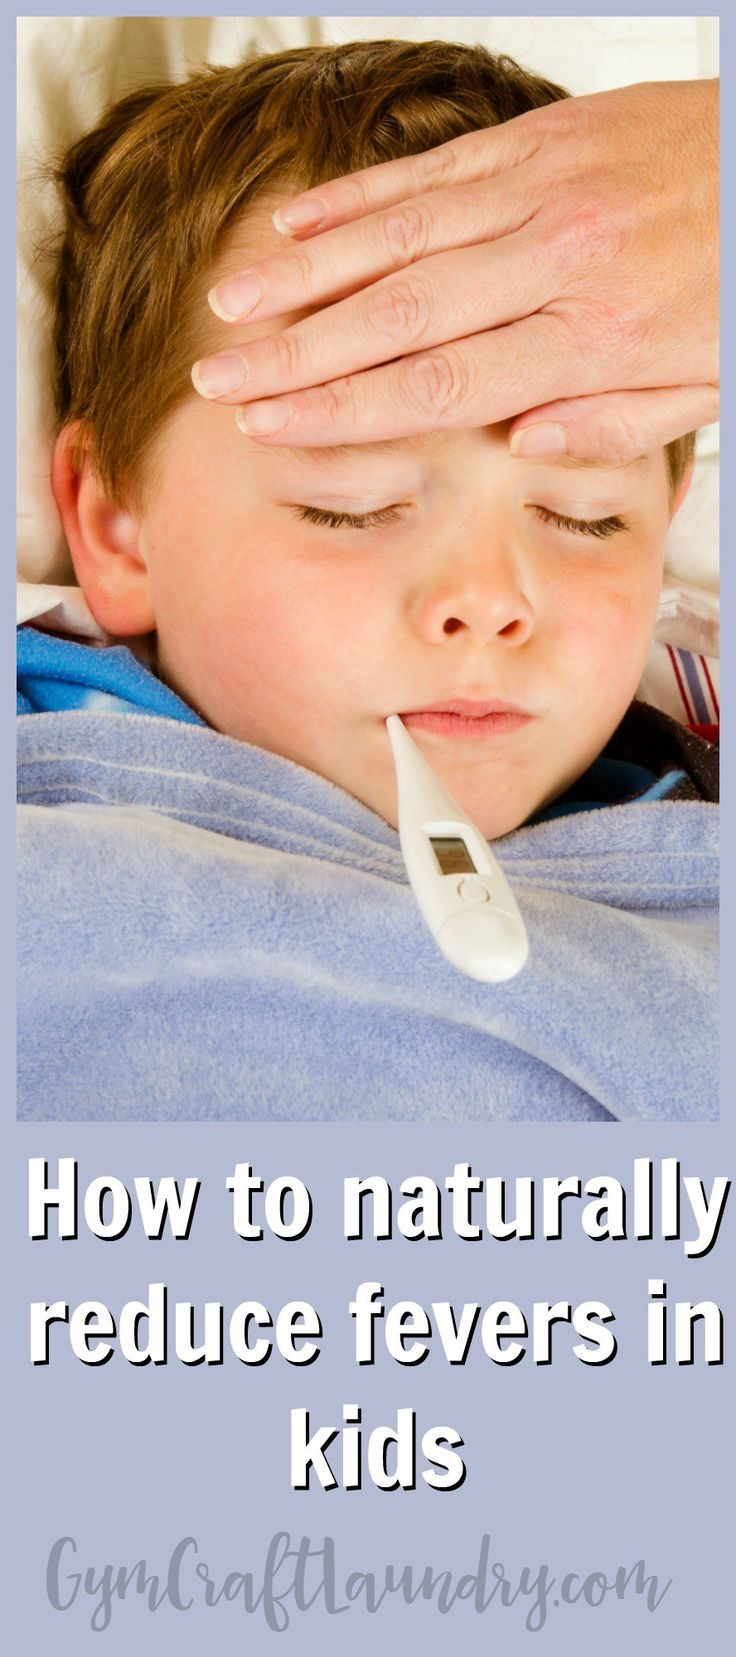 How to naturally reduce fevers in kids. Also, who my family calls online when we need a doctor.